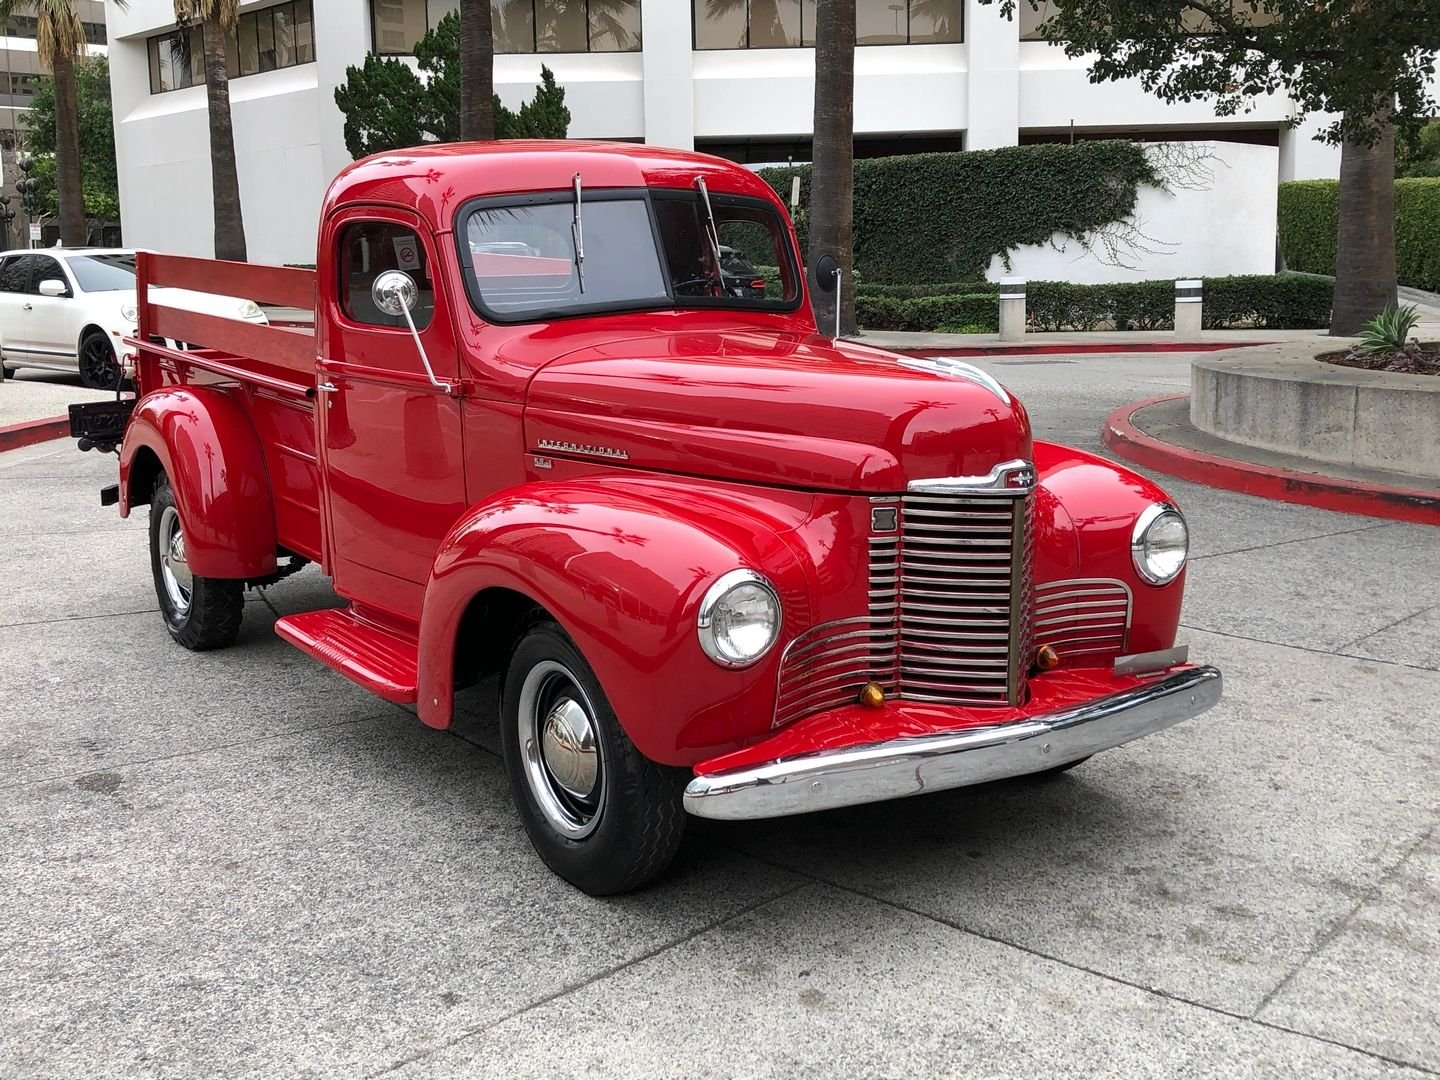 1949 International Harvester KB1